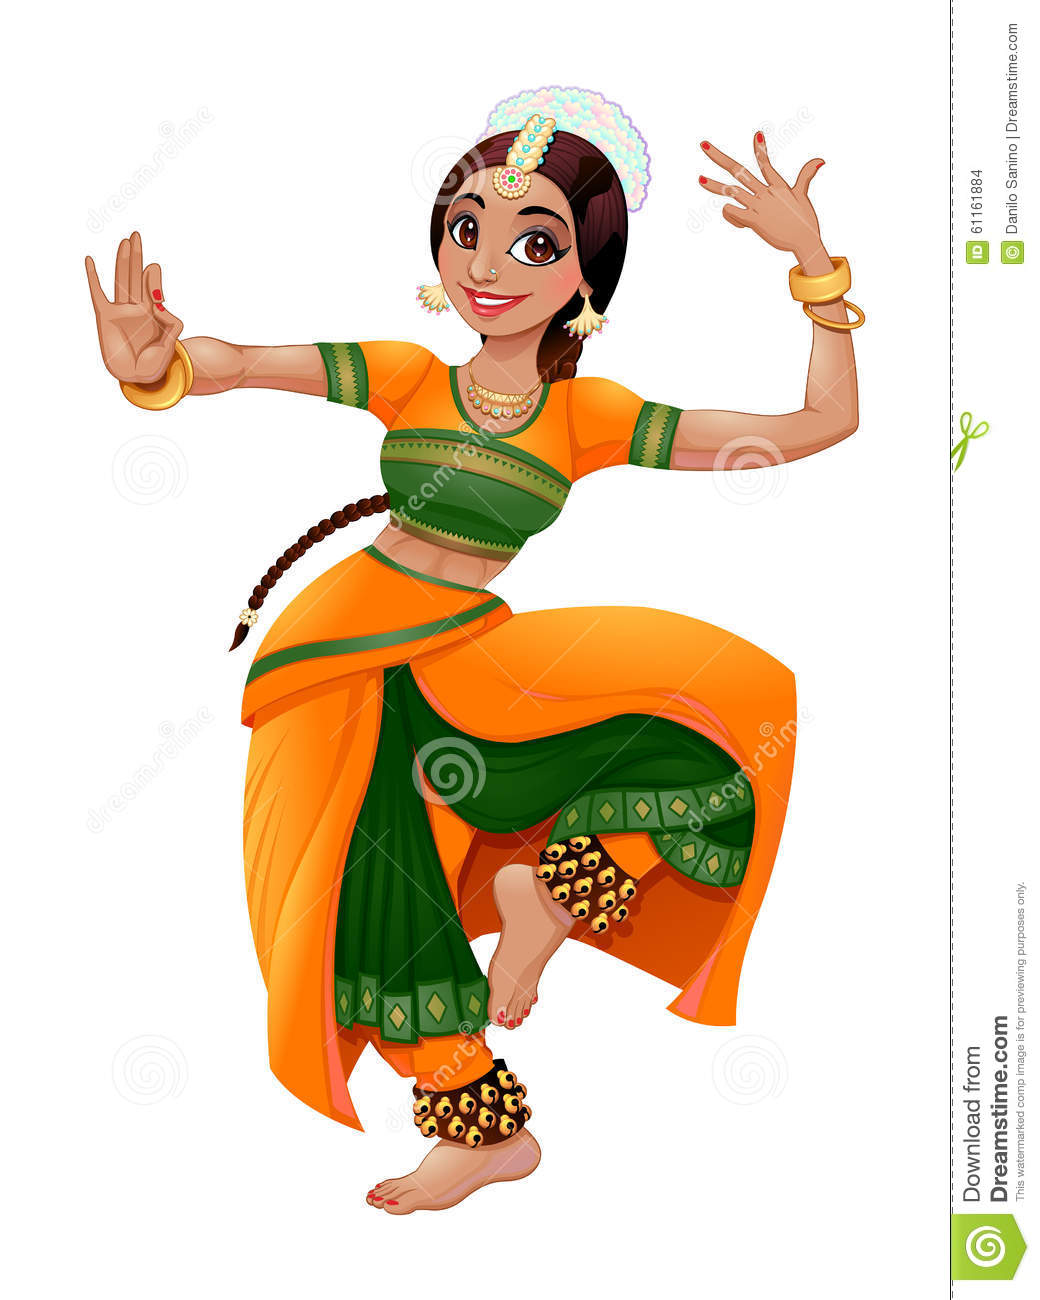 Funny Indian Dance Download : funny, indian, dance, download, Indian, Dancer, Stock, Illustrations, 3,311, Illustrations,, Vectors, Clipart, Dreamstime